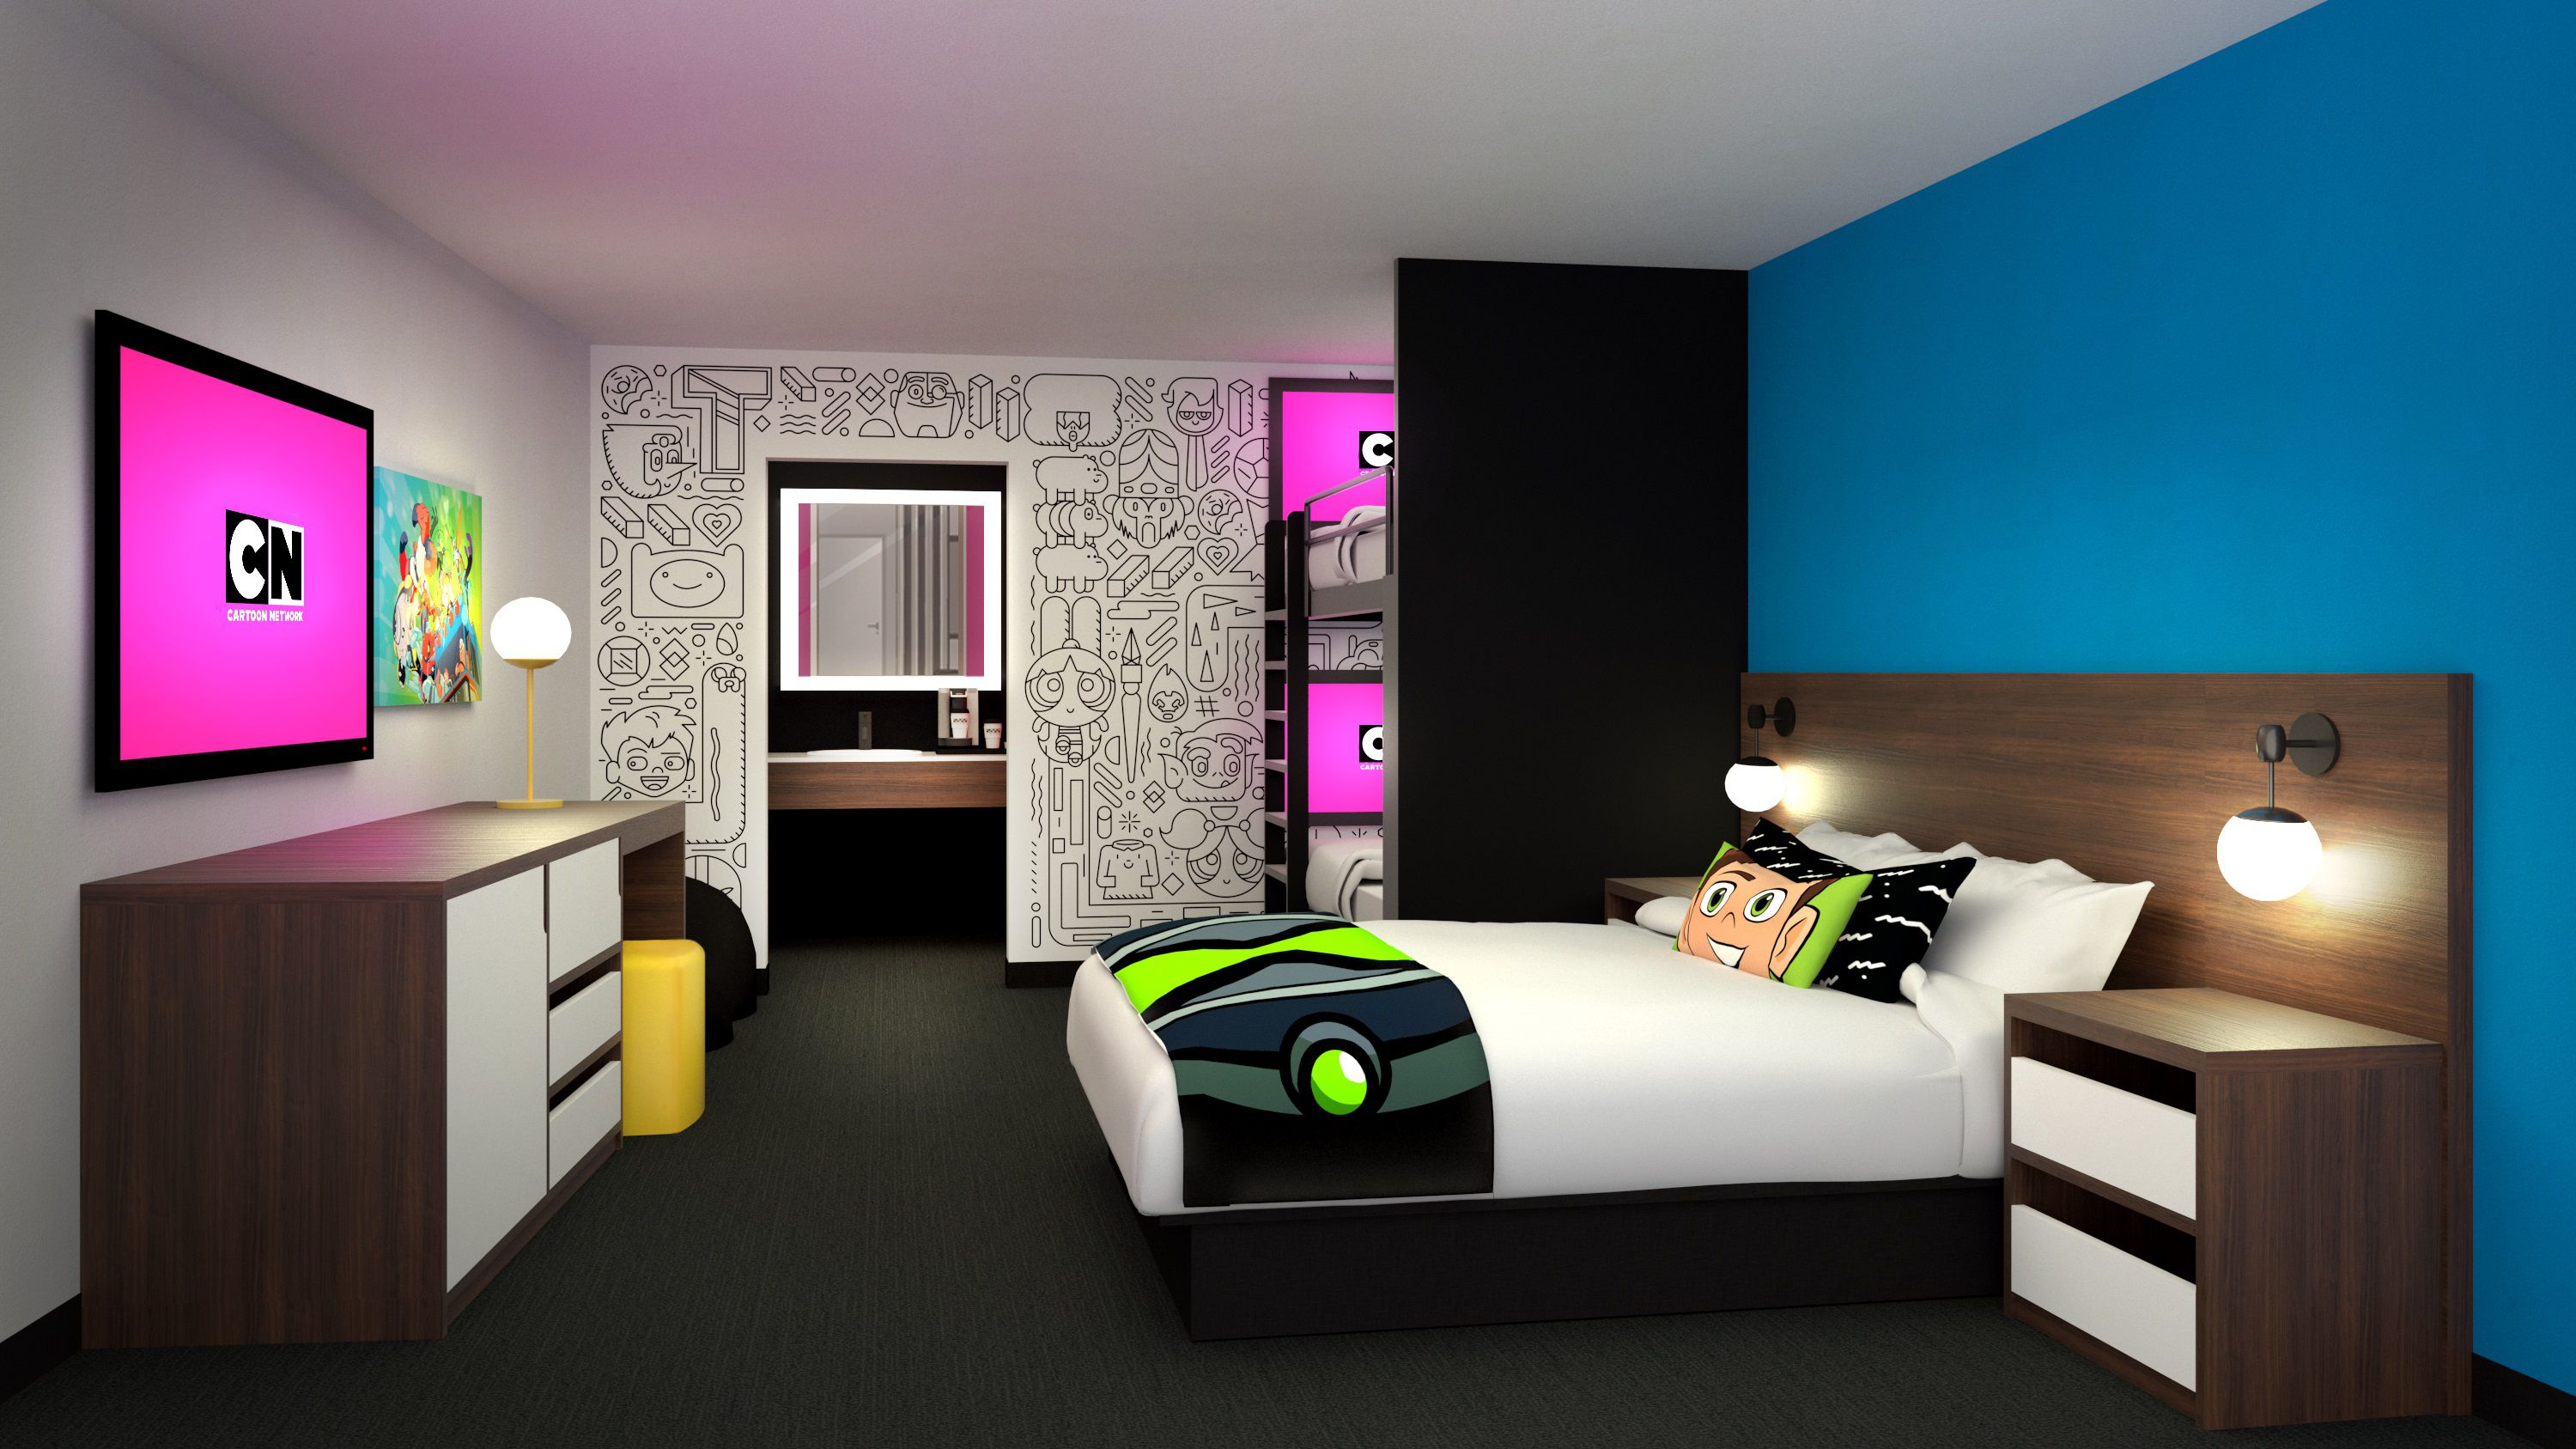 7 Things To Know About The Cartoon Network Hotel Before It Opens